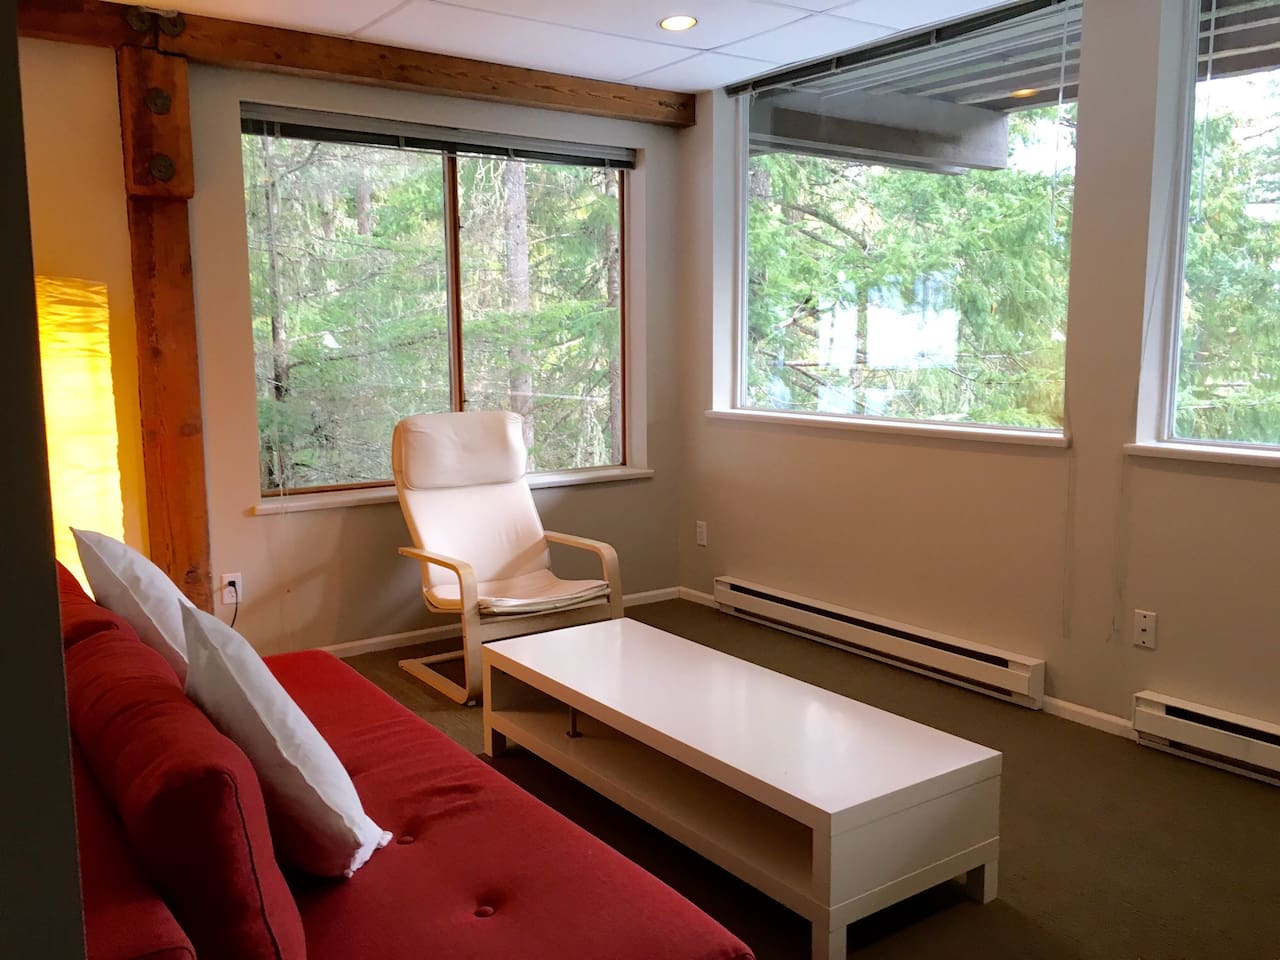 The living room has a sofa bed and looks out onto the beautiful west coast forest.